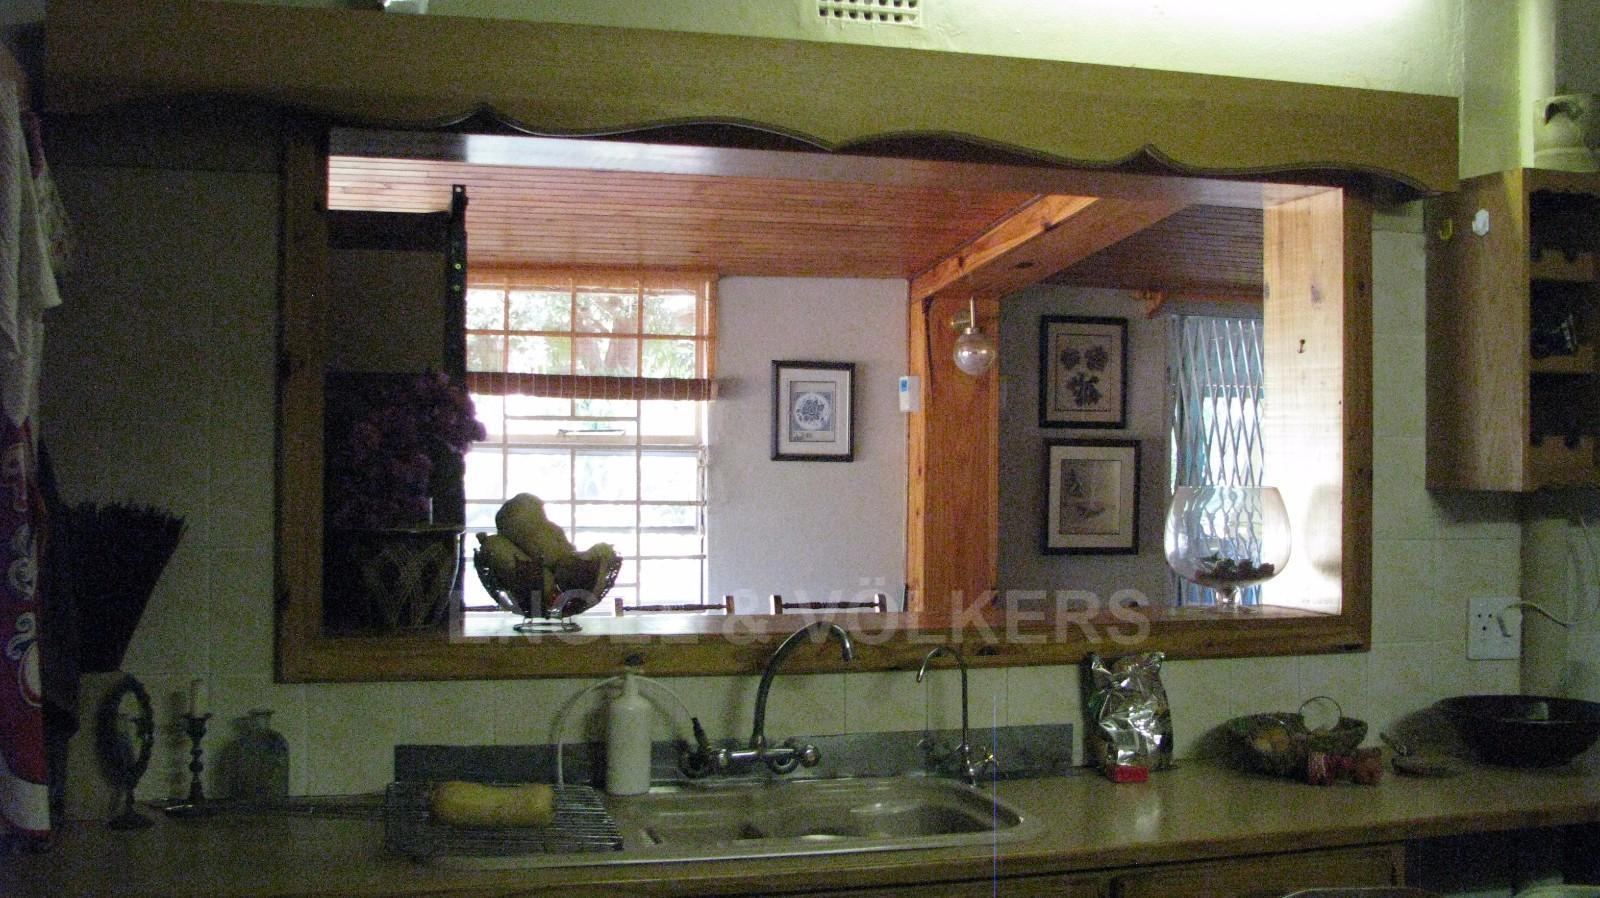 Land in Farms - Serving counter from the kitchen to the dining room